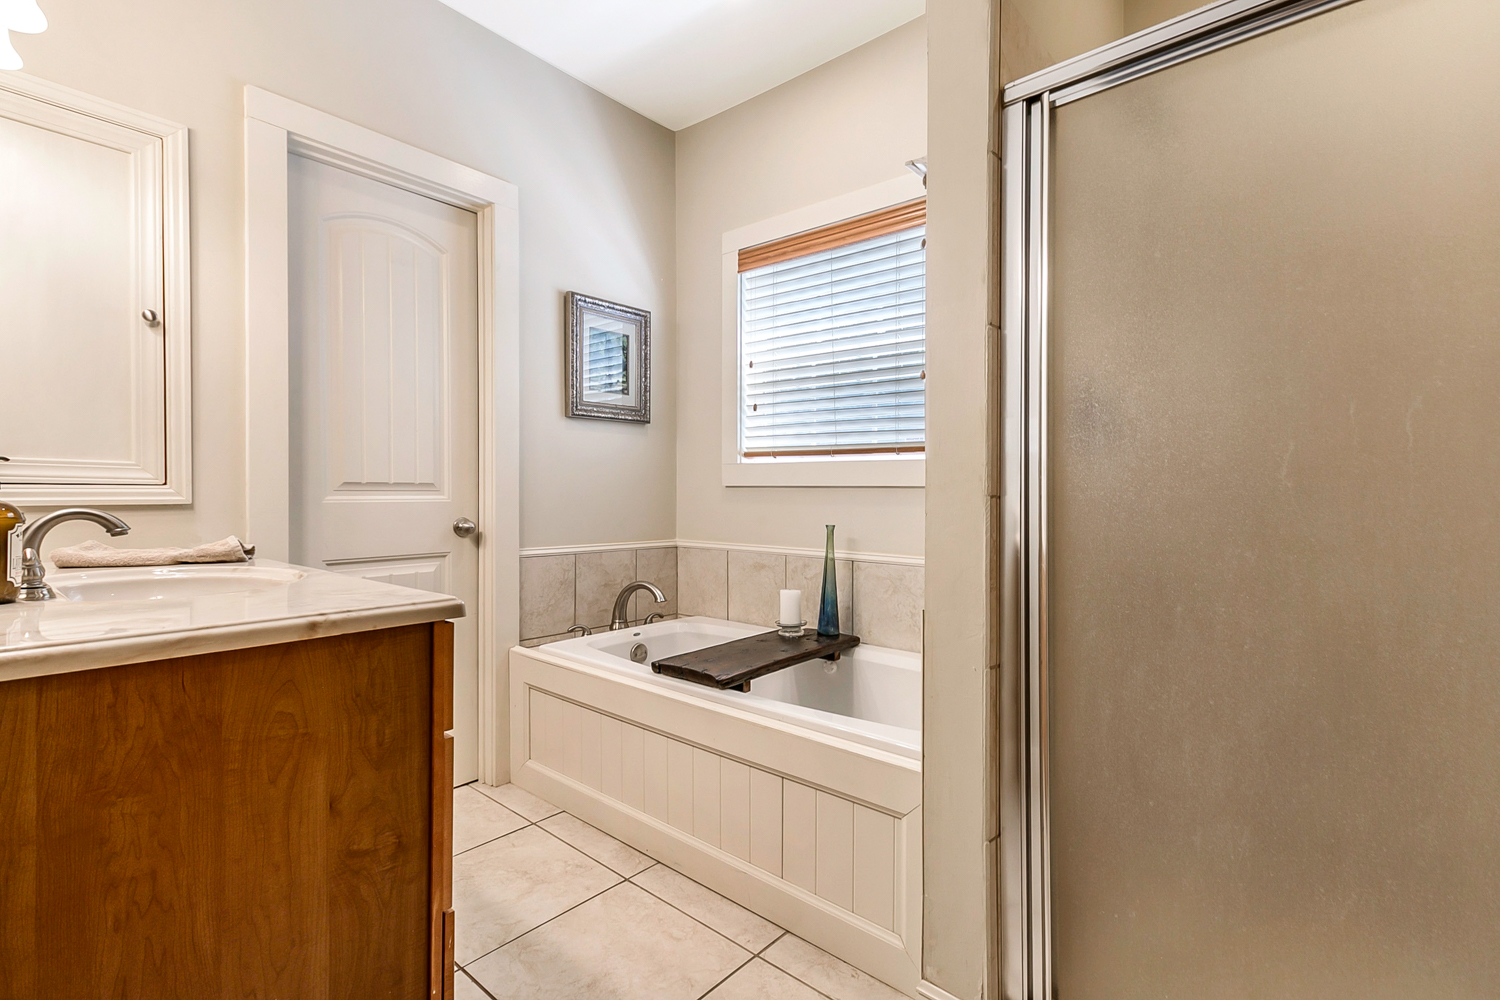 Uptown, House, 3 beds, 2.0 baths, $3000 per month New Orleans Rental - devie image_13